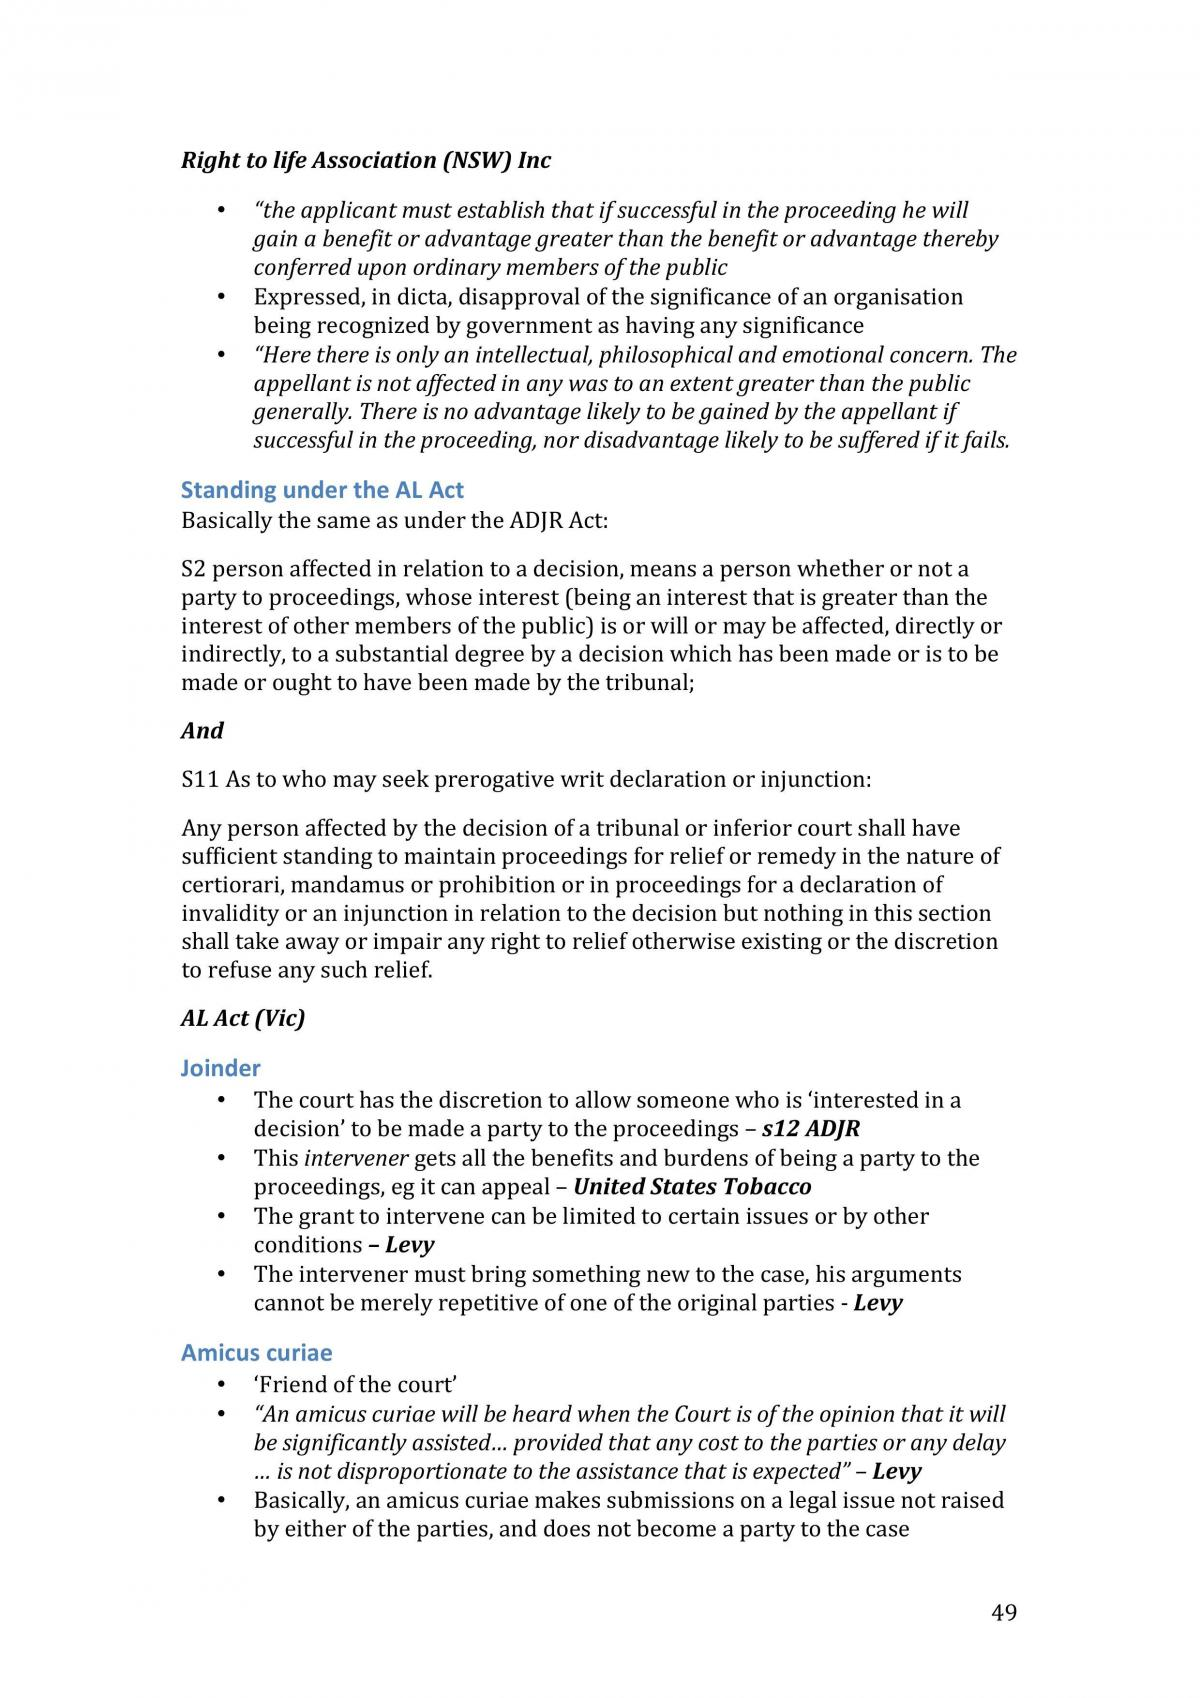 Long Administrative Law Notes With Table Of Contents - Page 53